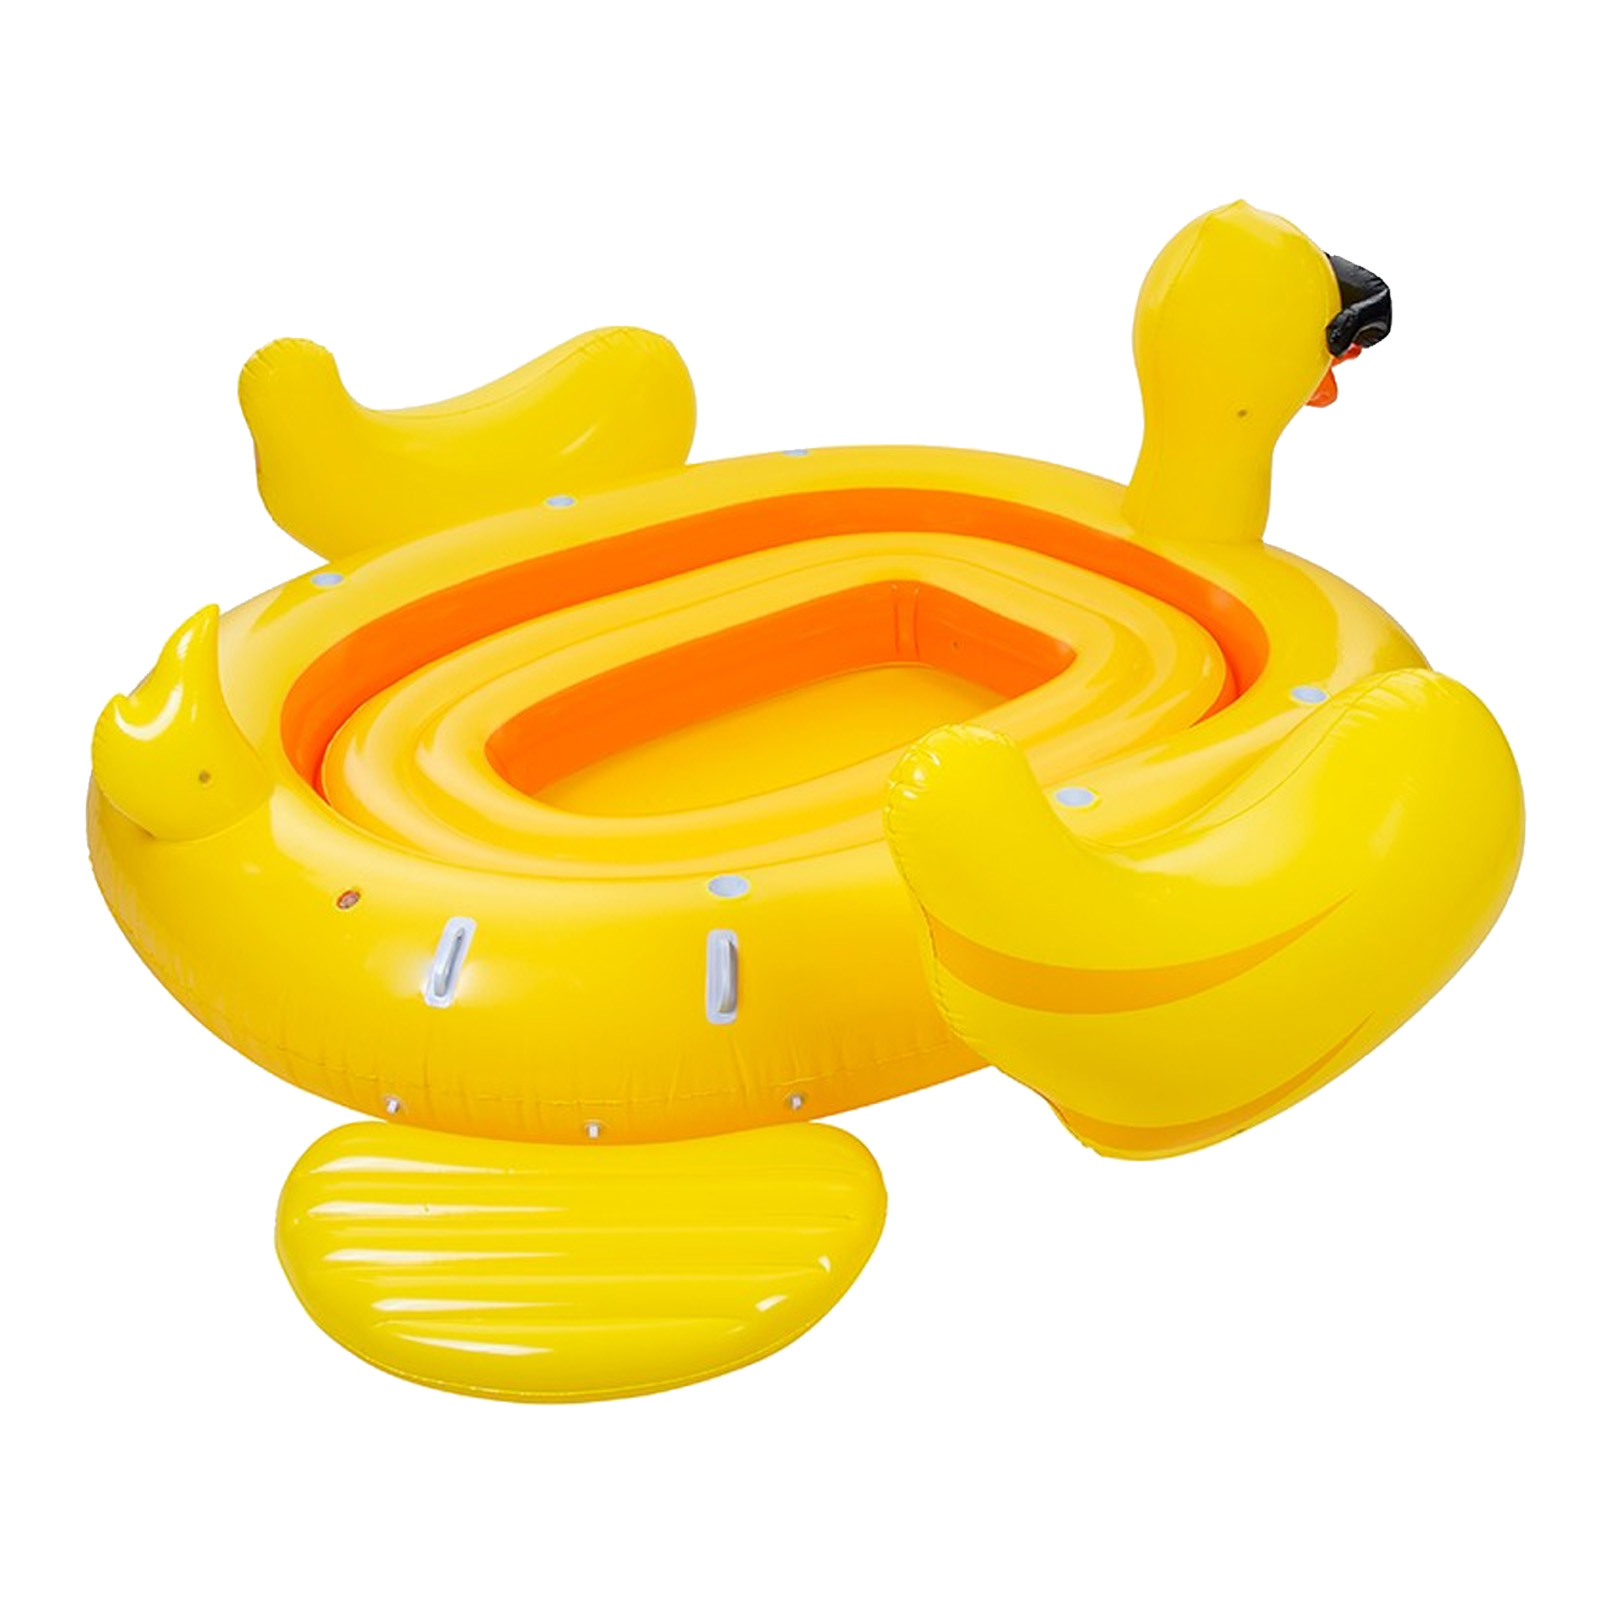 Indexbild 4 - Pure4Fun 6 Person Giant Inflatable Party Blow Up Dinghy Boat Pool Beach Lilo